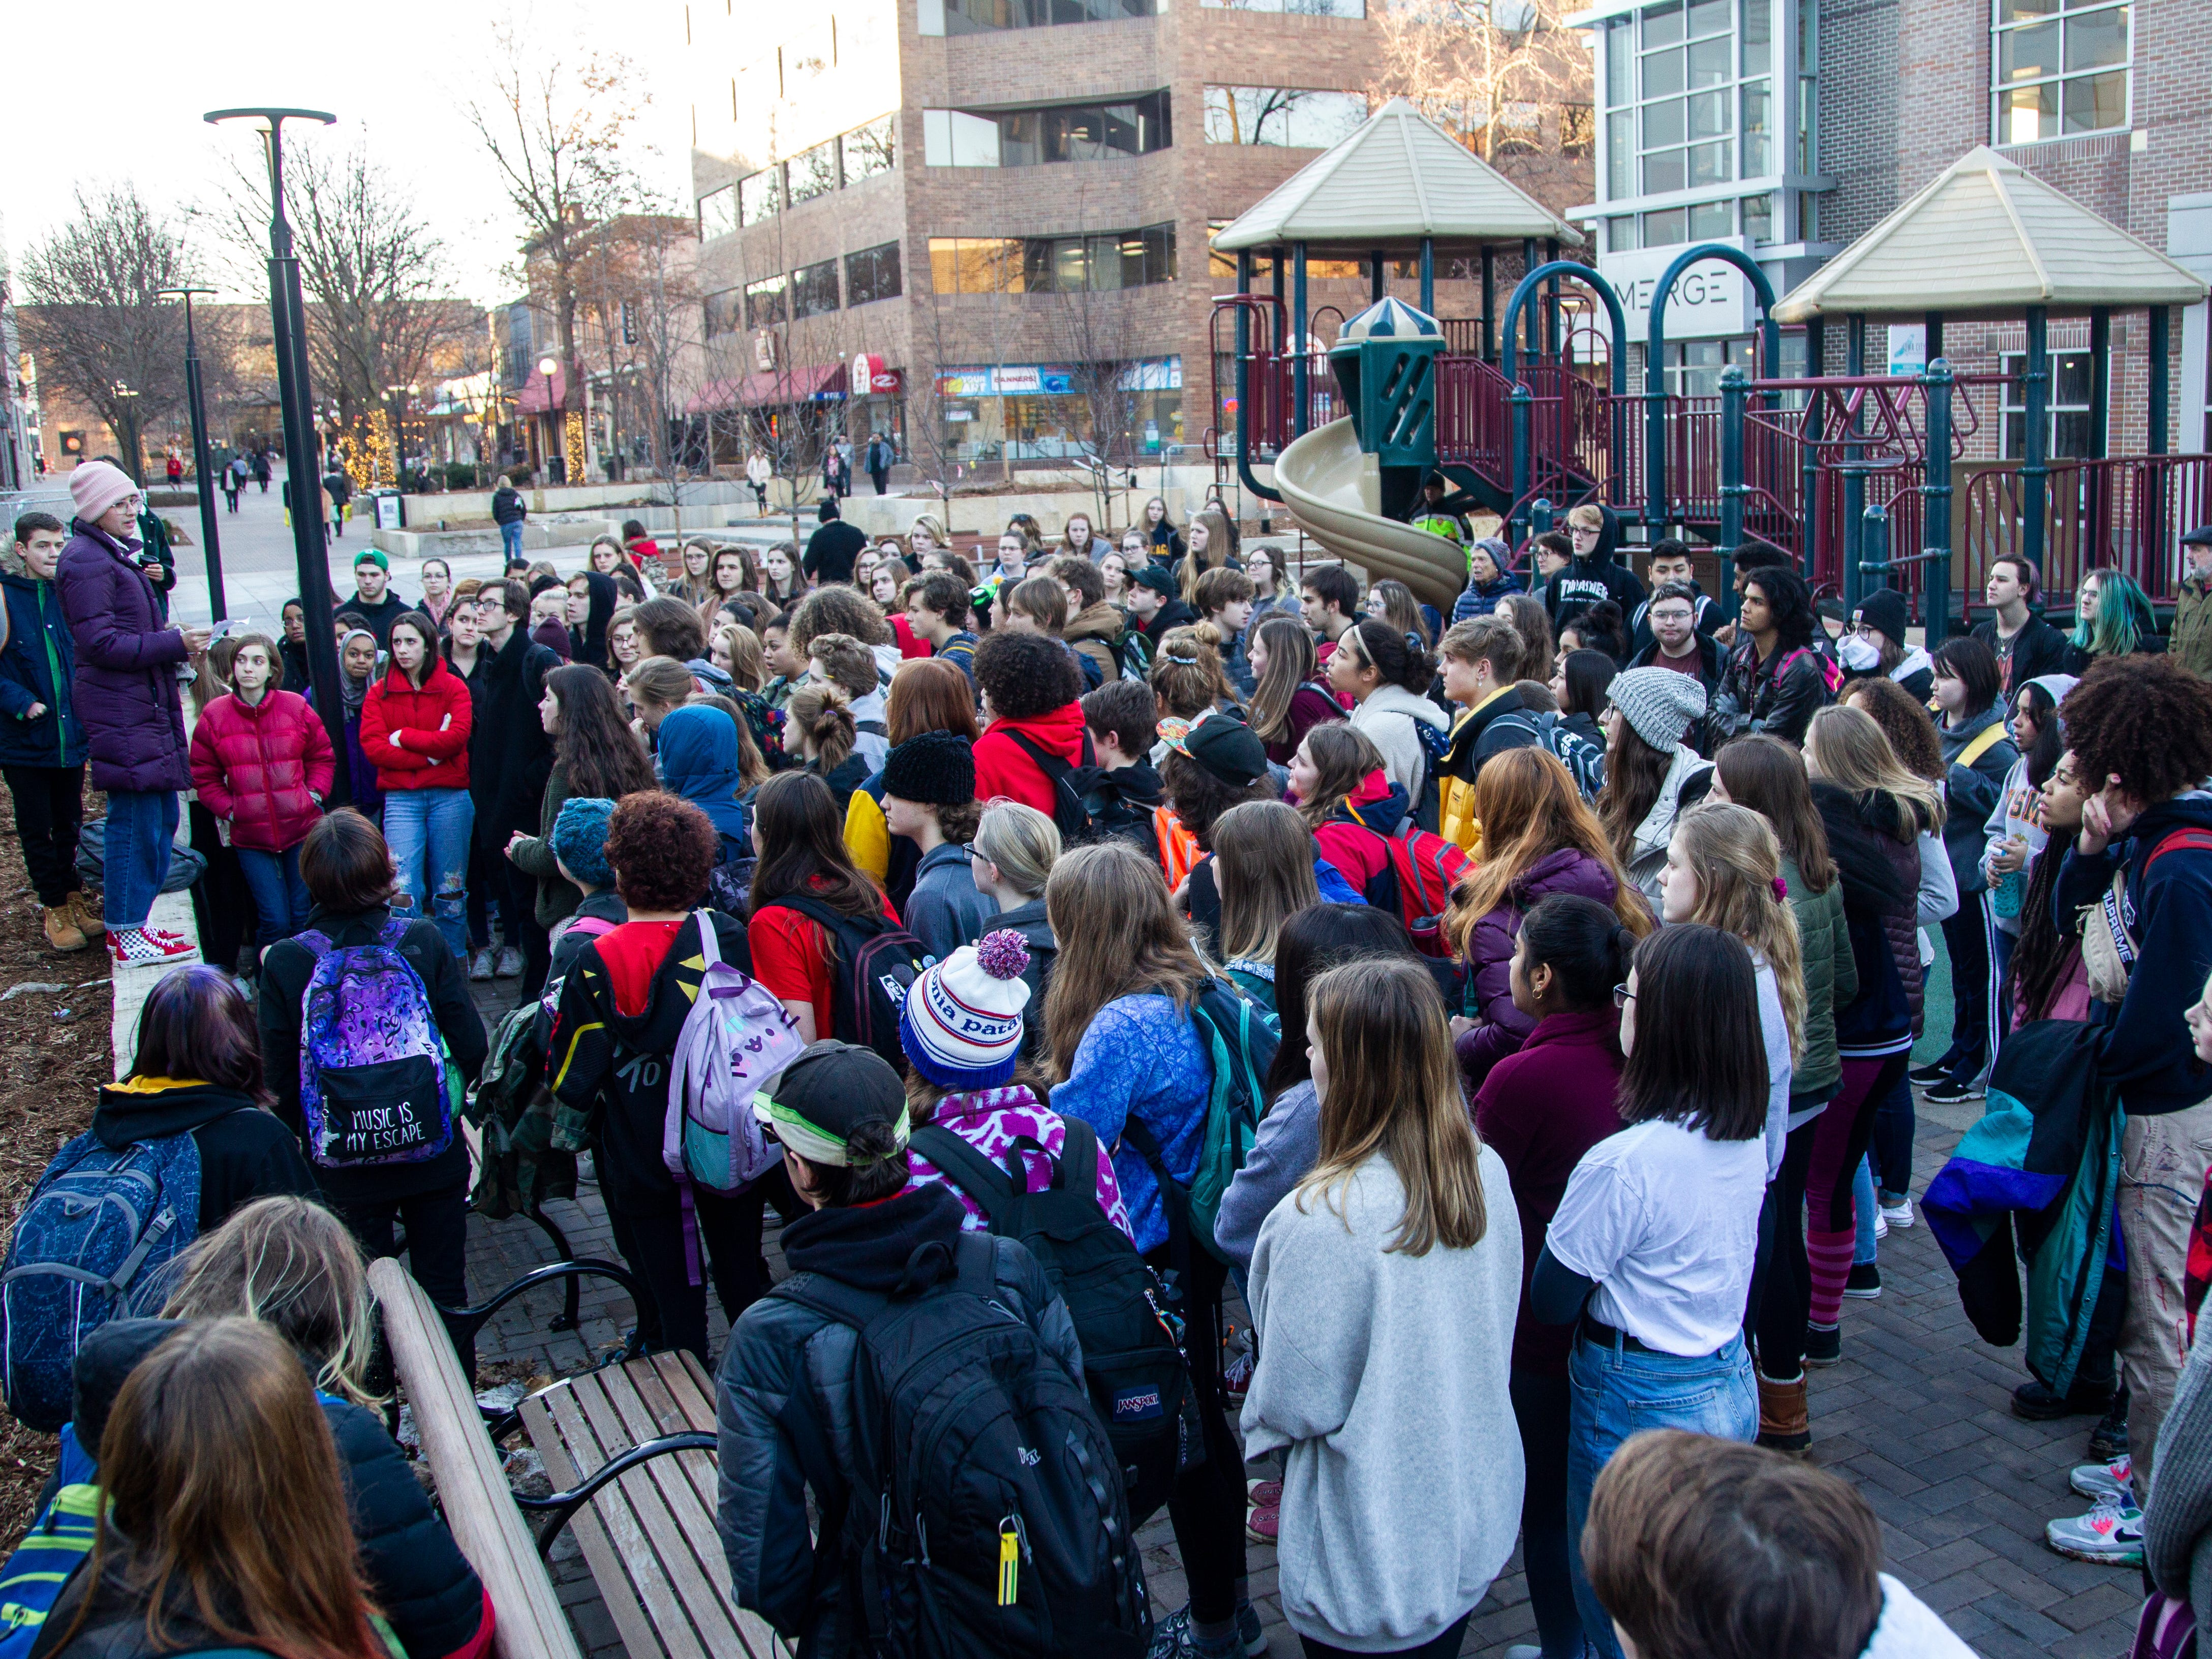 City High junior Mira Bohannan-Kumar speaks during a walkout on Friday, Dec. 14, 2018, in Iowa City. The Students Against School Shootings group organized the walkout to land on the 6th anniversary of the Sandy Hook school shooting.